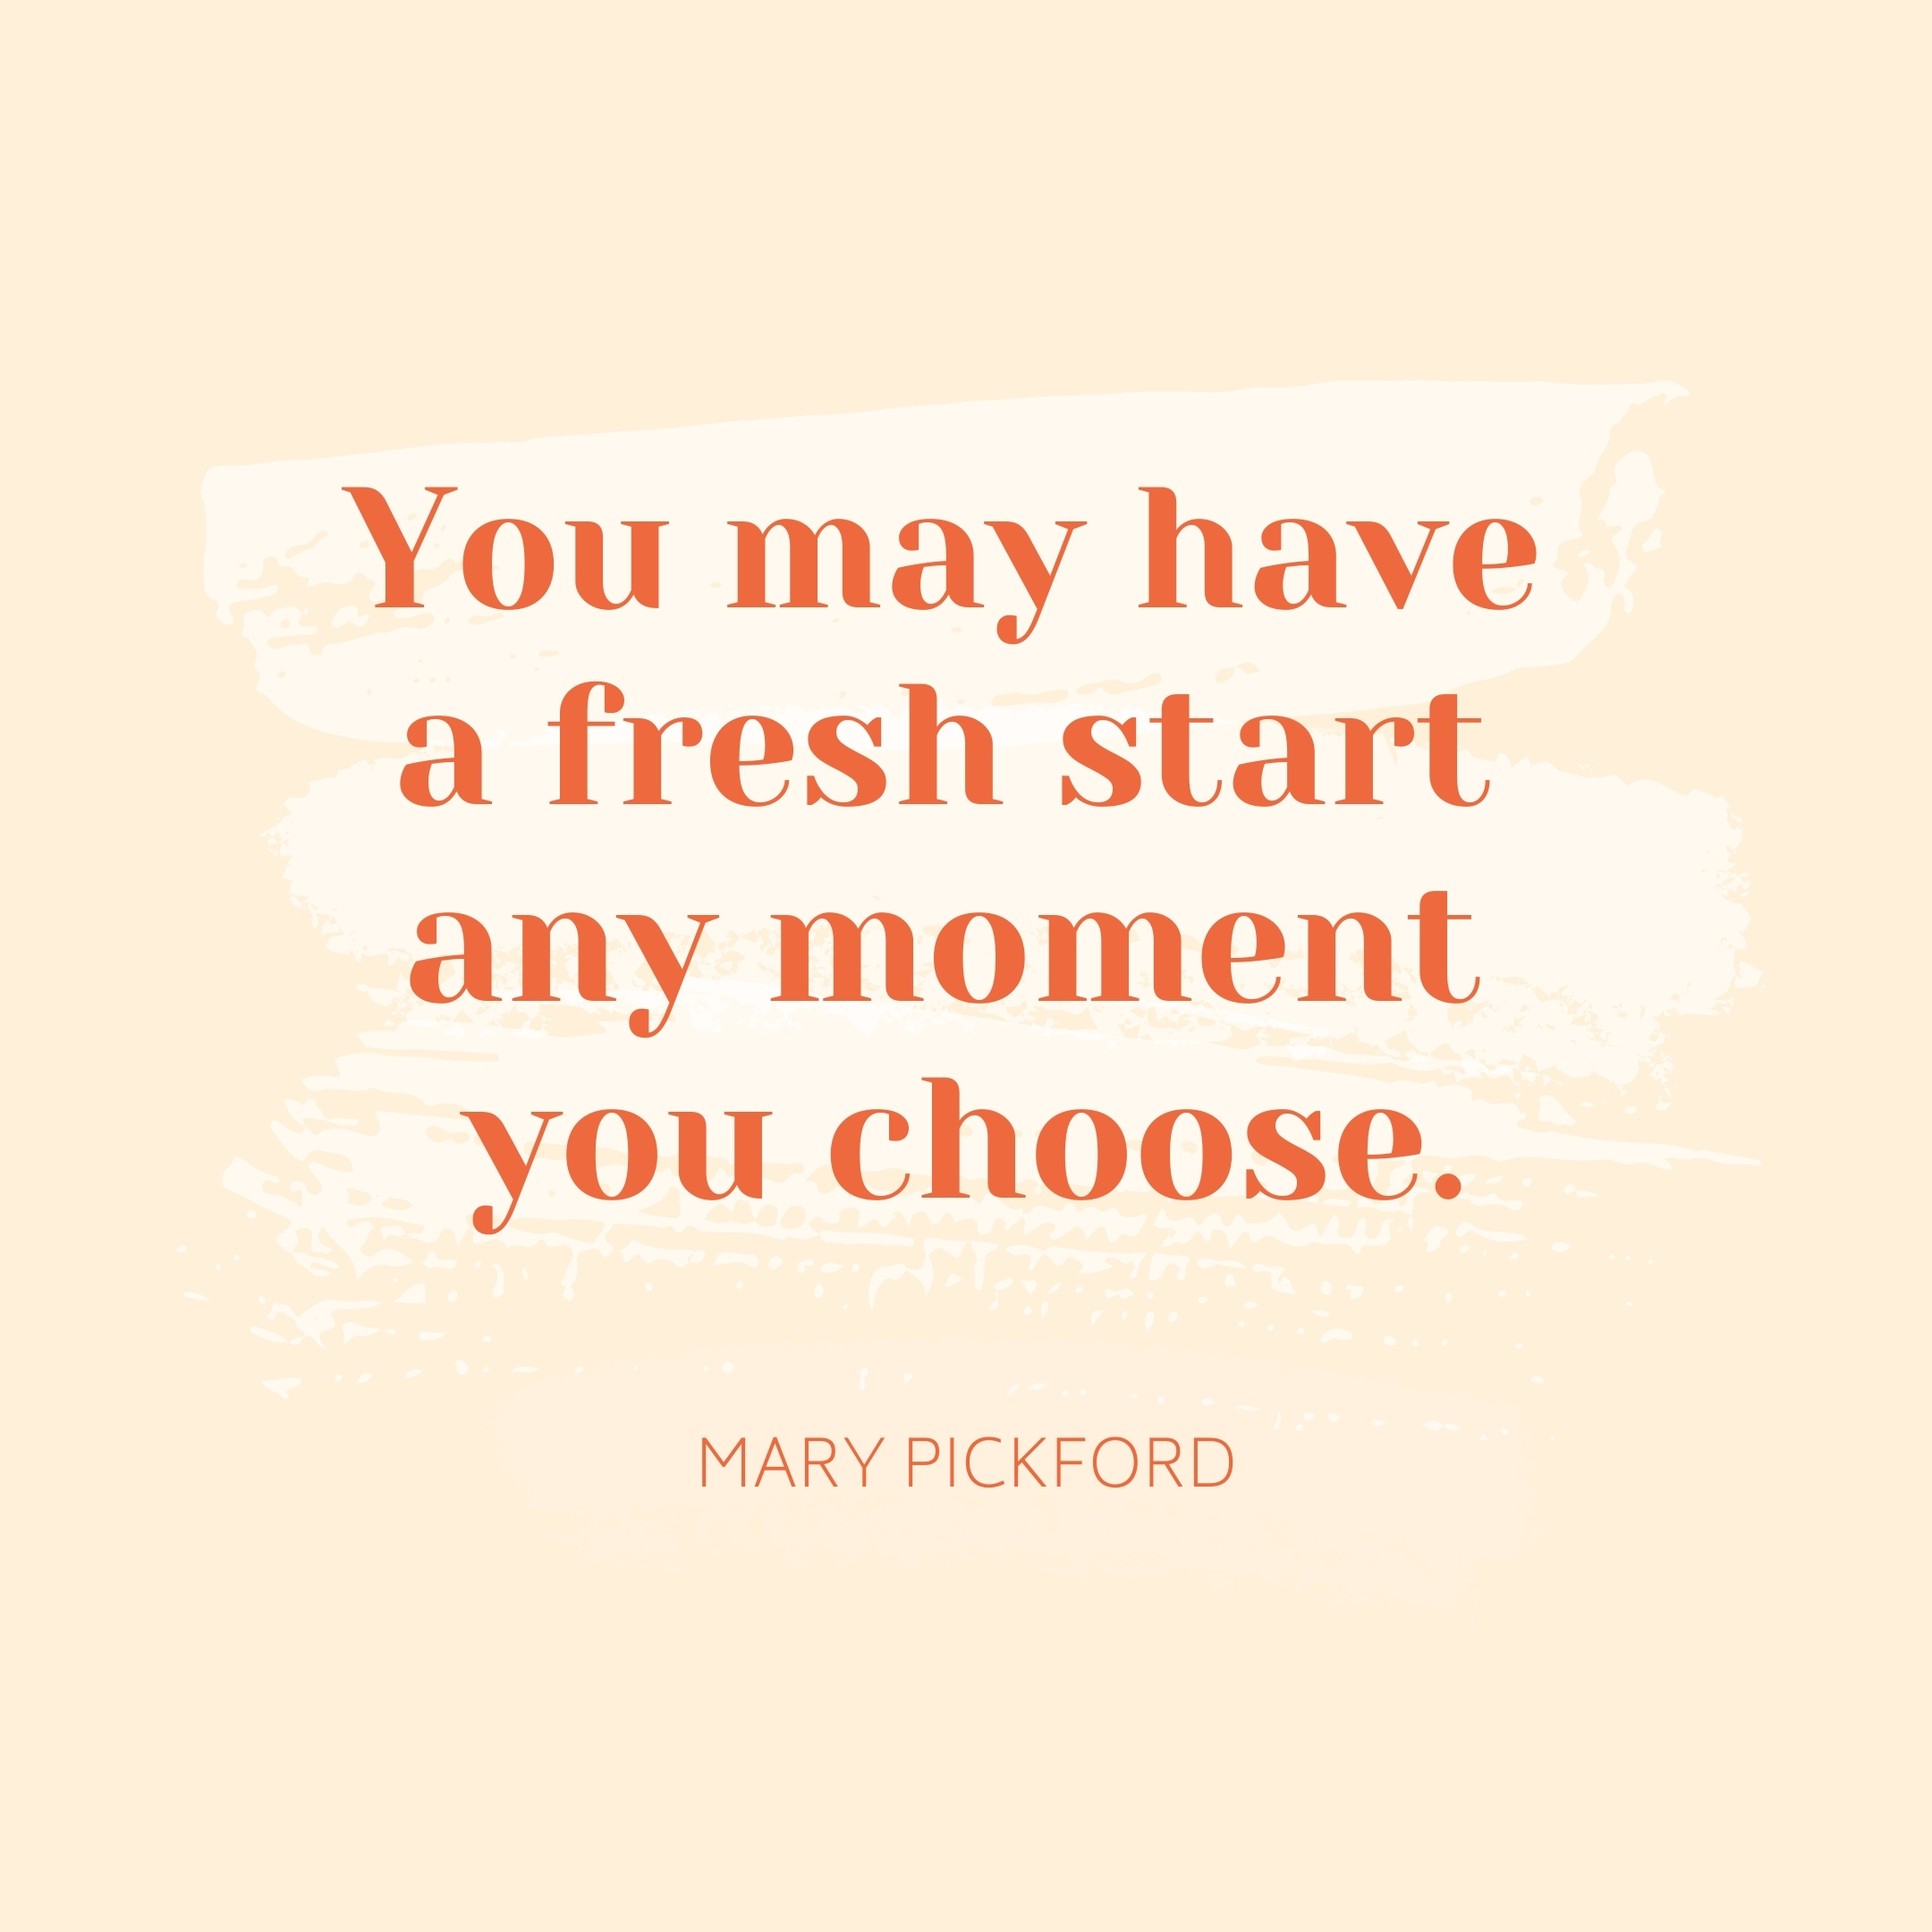 mary pickford quote | monday motivation quotes